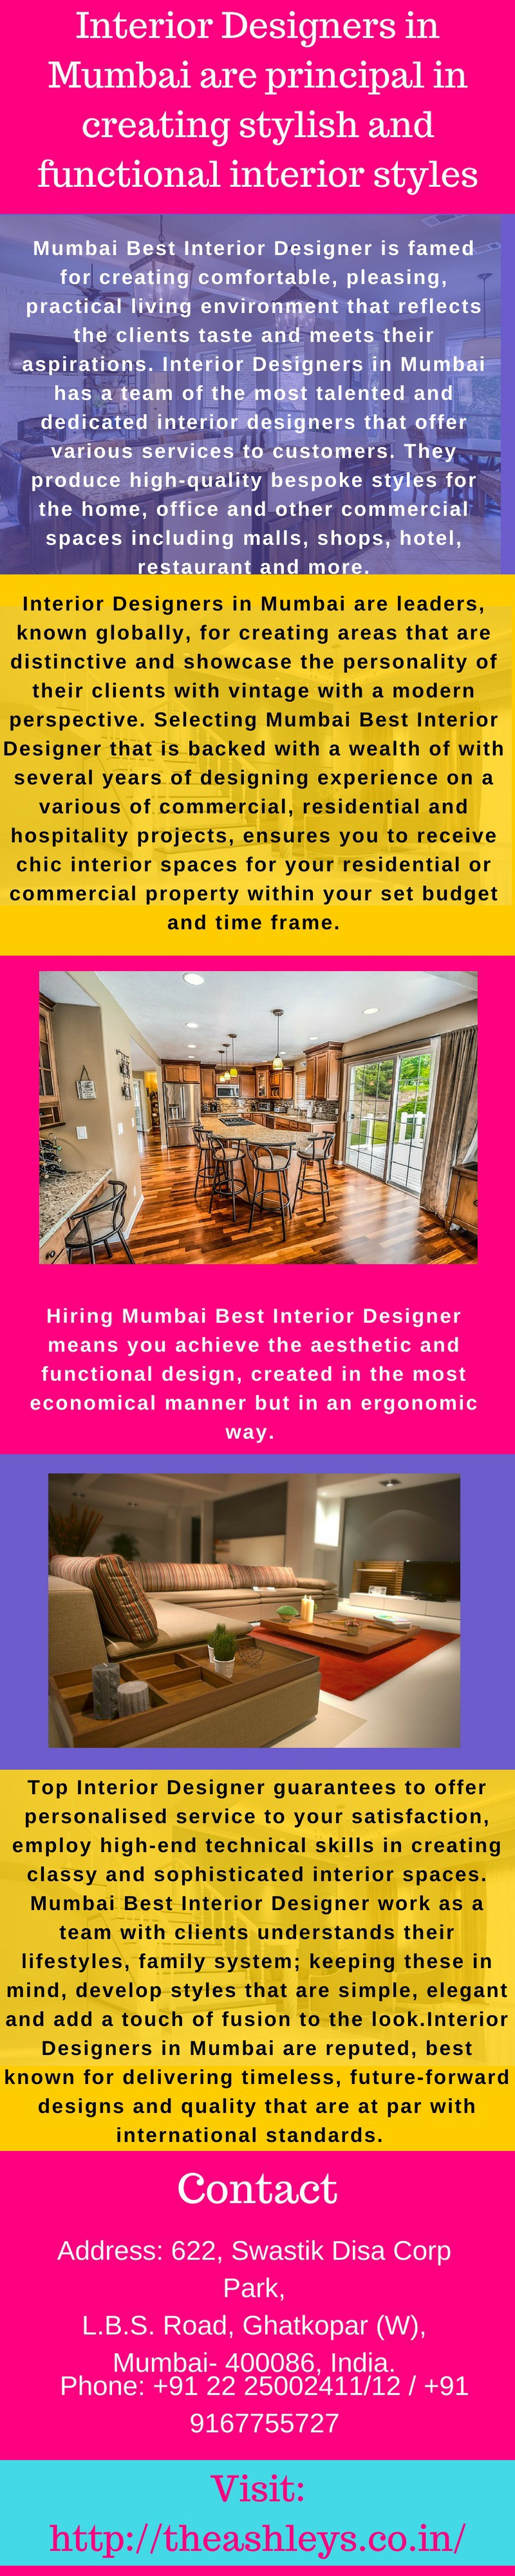 Interior Designers In Mumbai Are Principal In Creating Stylish And Functional Interior Styles By The Ashleys Medium